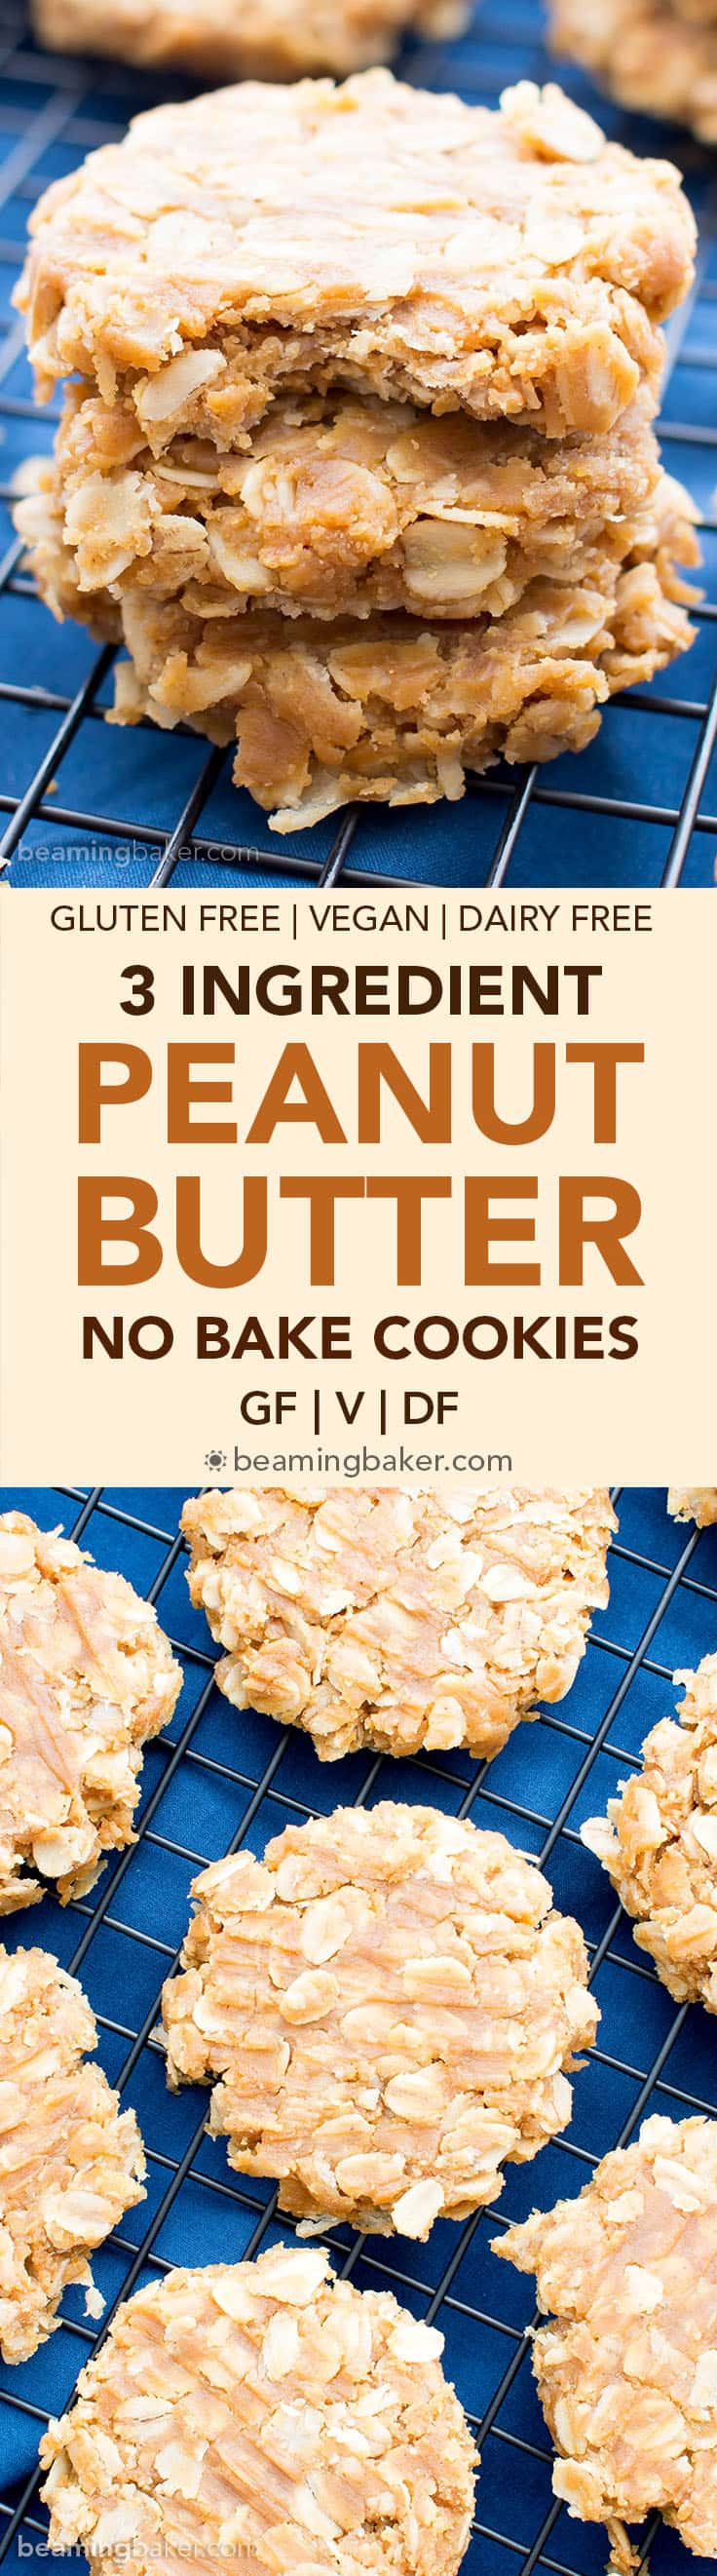 Healthy No Bake Oatmeal Cookies With Peanut Butter  healthy no bake peanut butter oatmeal cookies